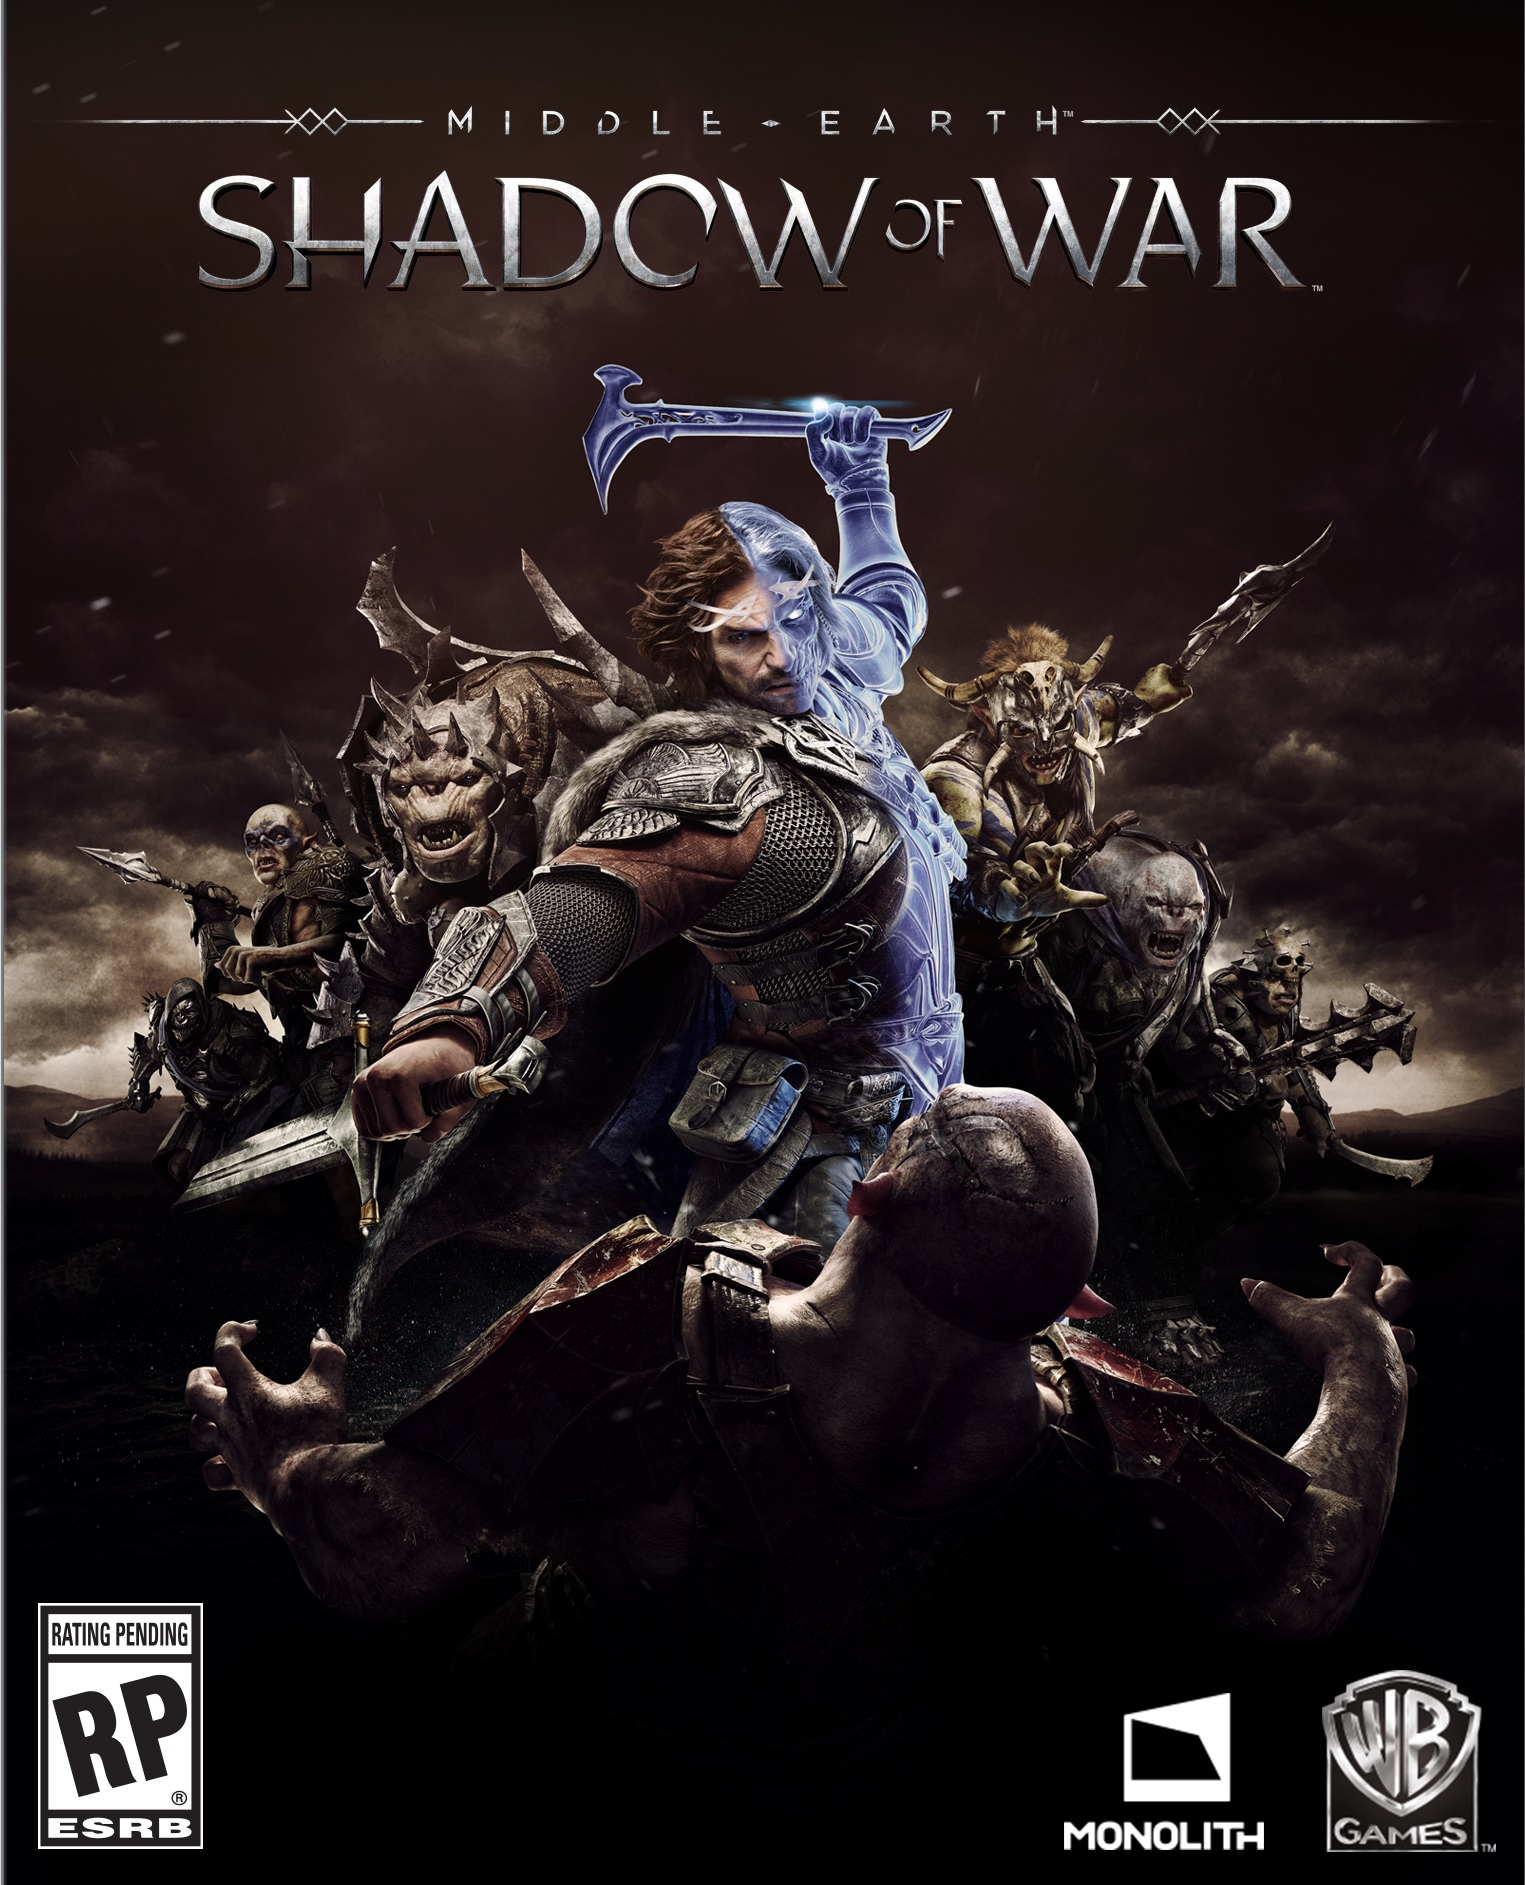 MIDDLE-EARTH: SHADOW OF WAR (Steam Key)+GIFT